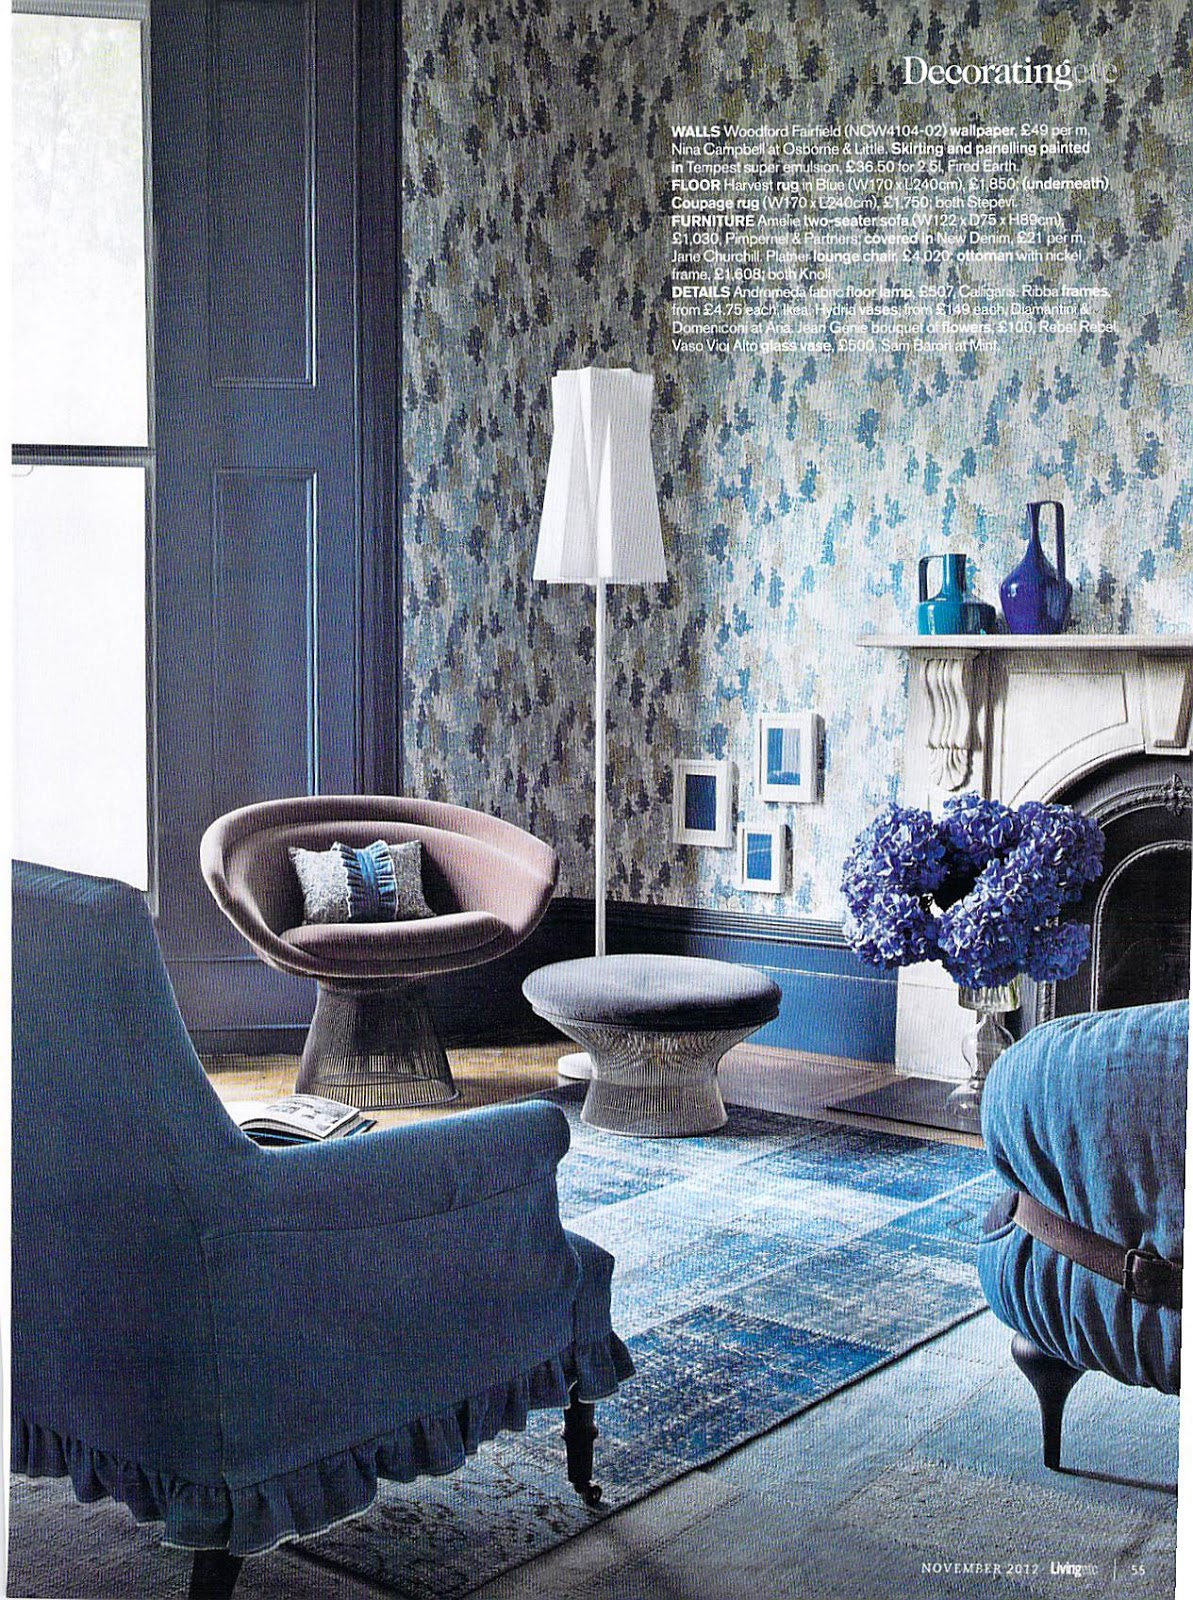 See Love Do Blue Jeans For Your Home Decor Home Decorators Catalog Best Ideas of Home Decor and Design [homedecoratorscatalog.us]